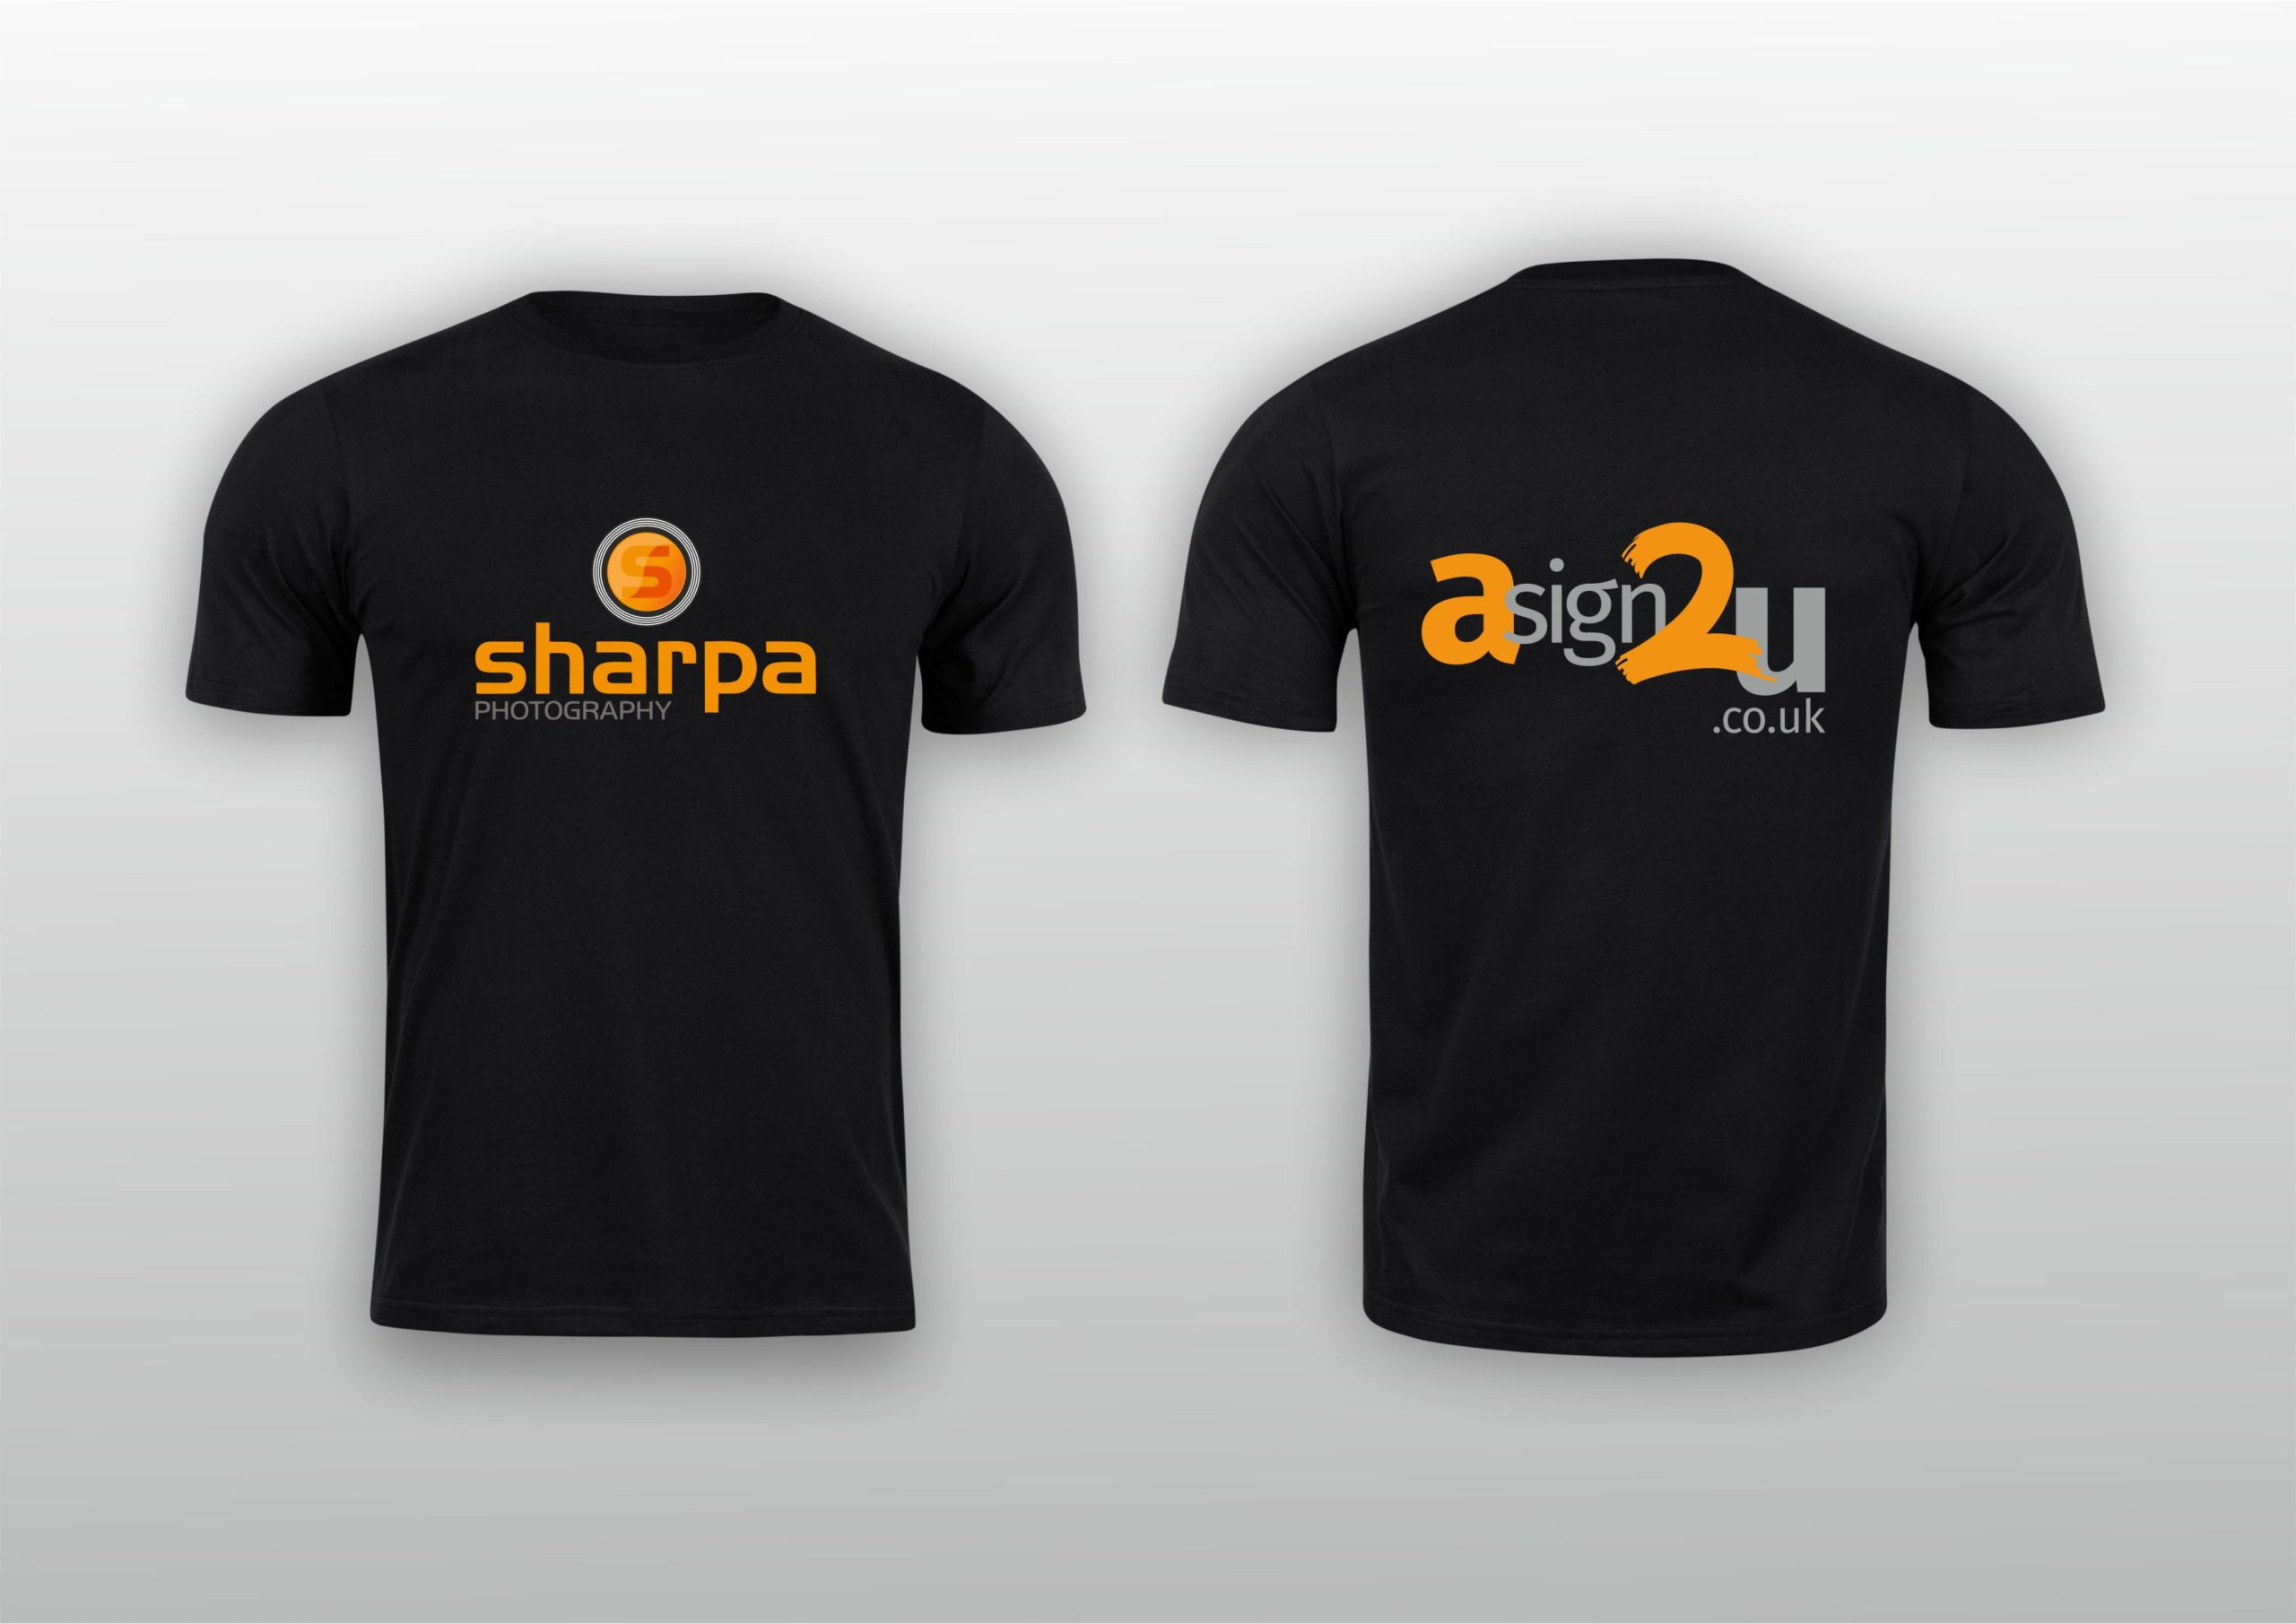 sharpa and asign2u t-shirt